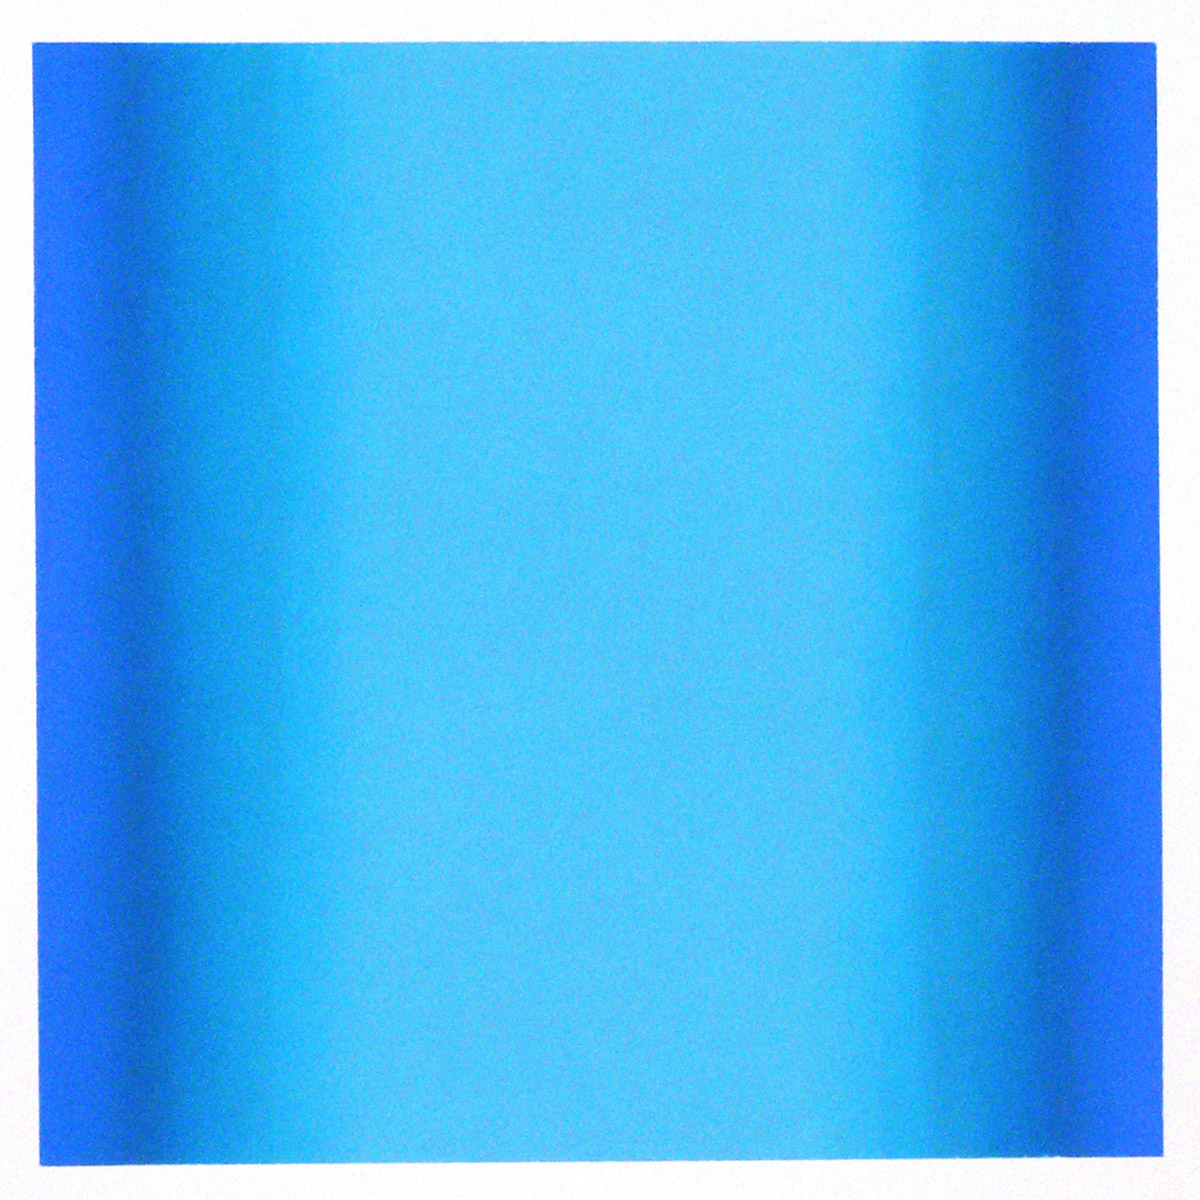 Cool-Light Cobalt-Ultramarine, Interplay Series, 2012, pastel on paper, image: 14 x 14 in. (36 x 36 cm.), sheet: 30 x 22 in. (76 x 56 cm.)